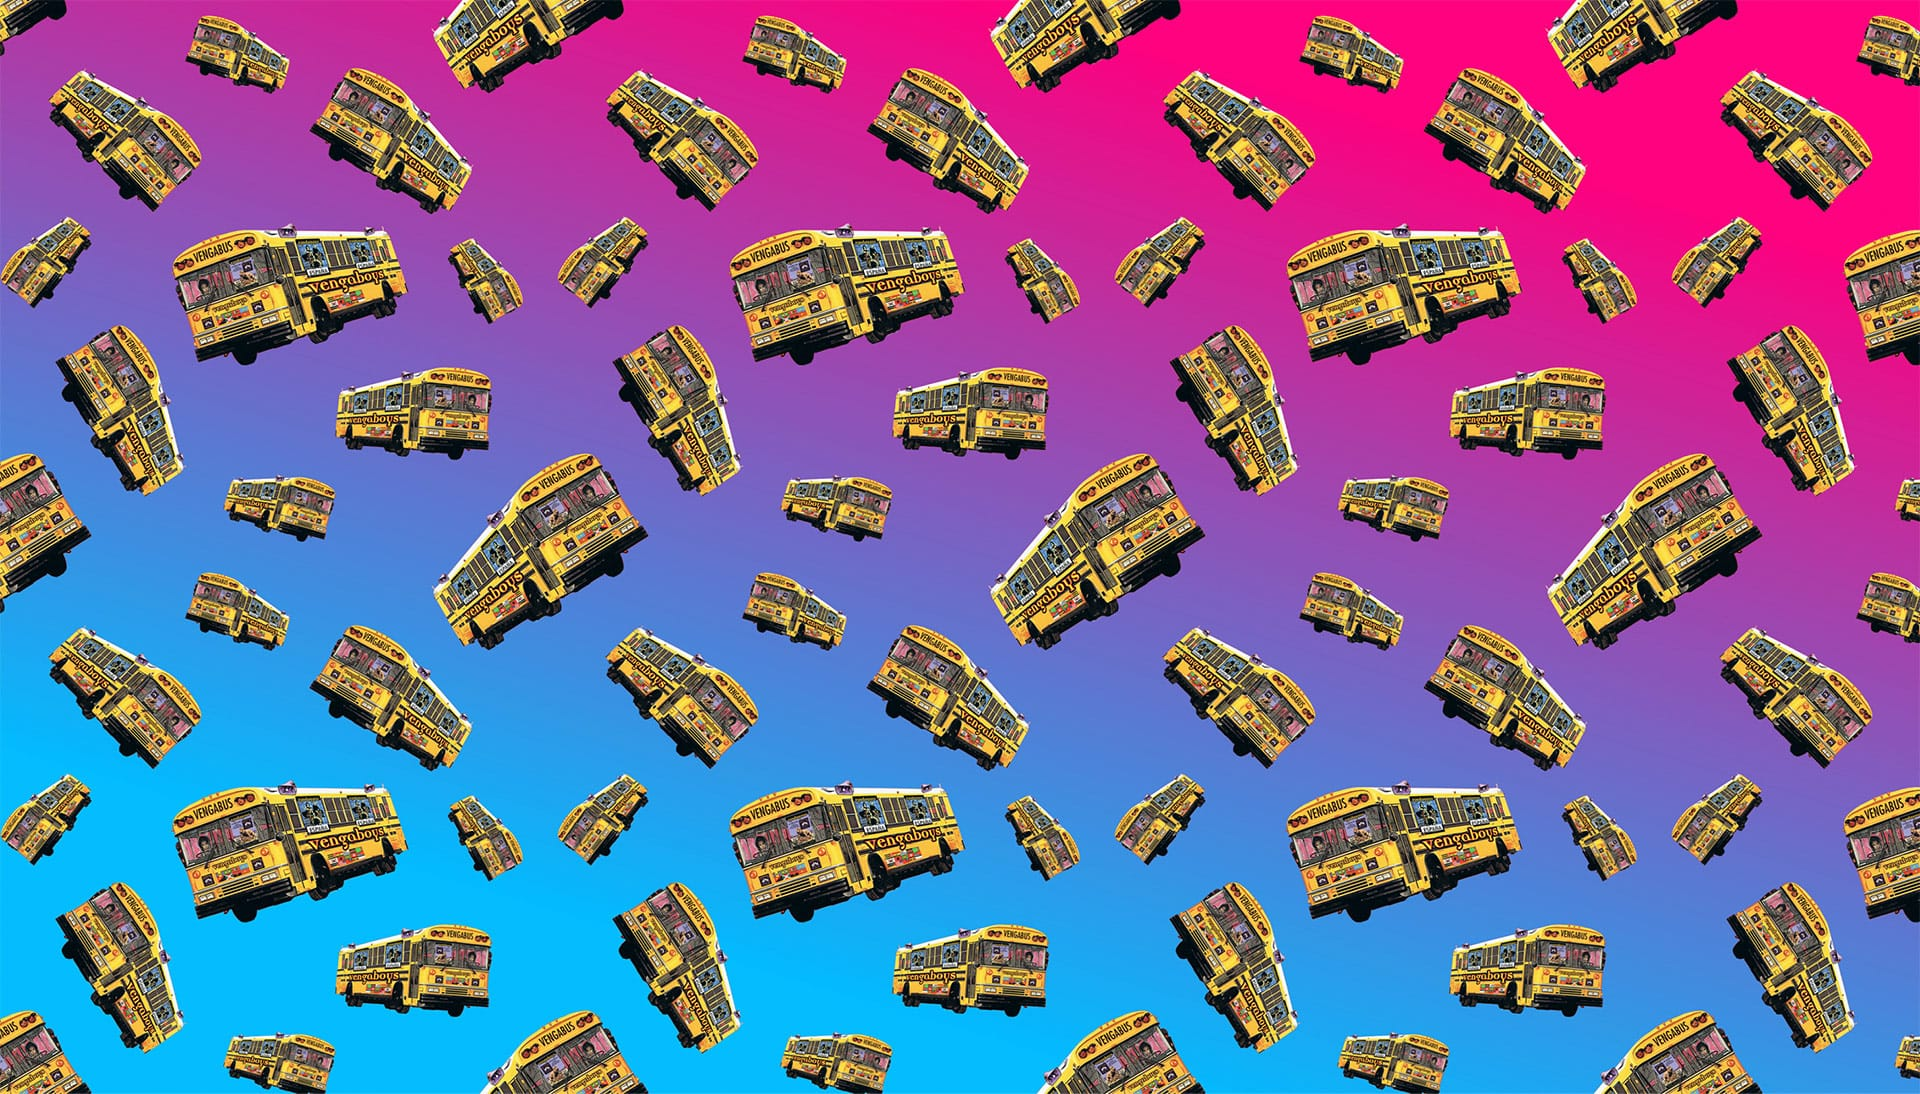 Vengaboys Homepage background pattern with the vengabus